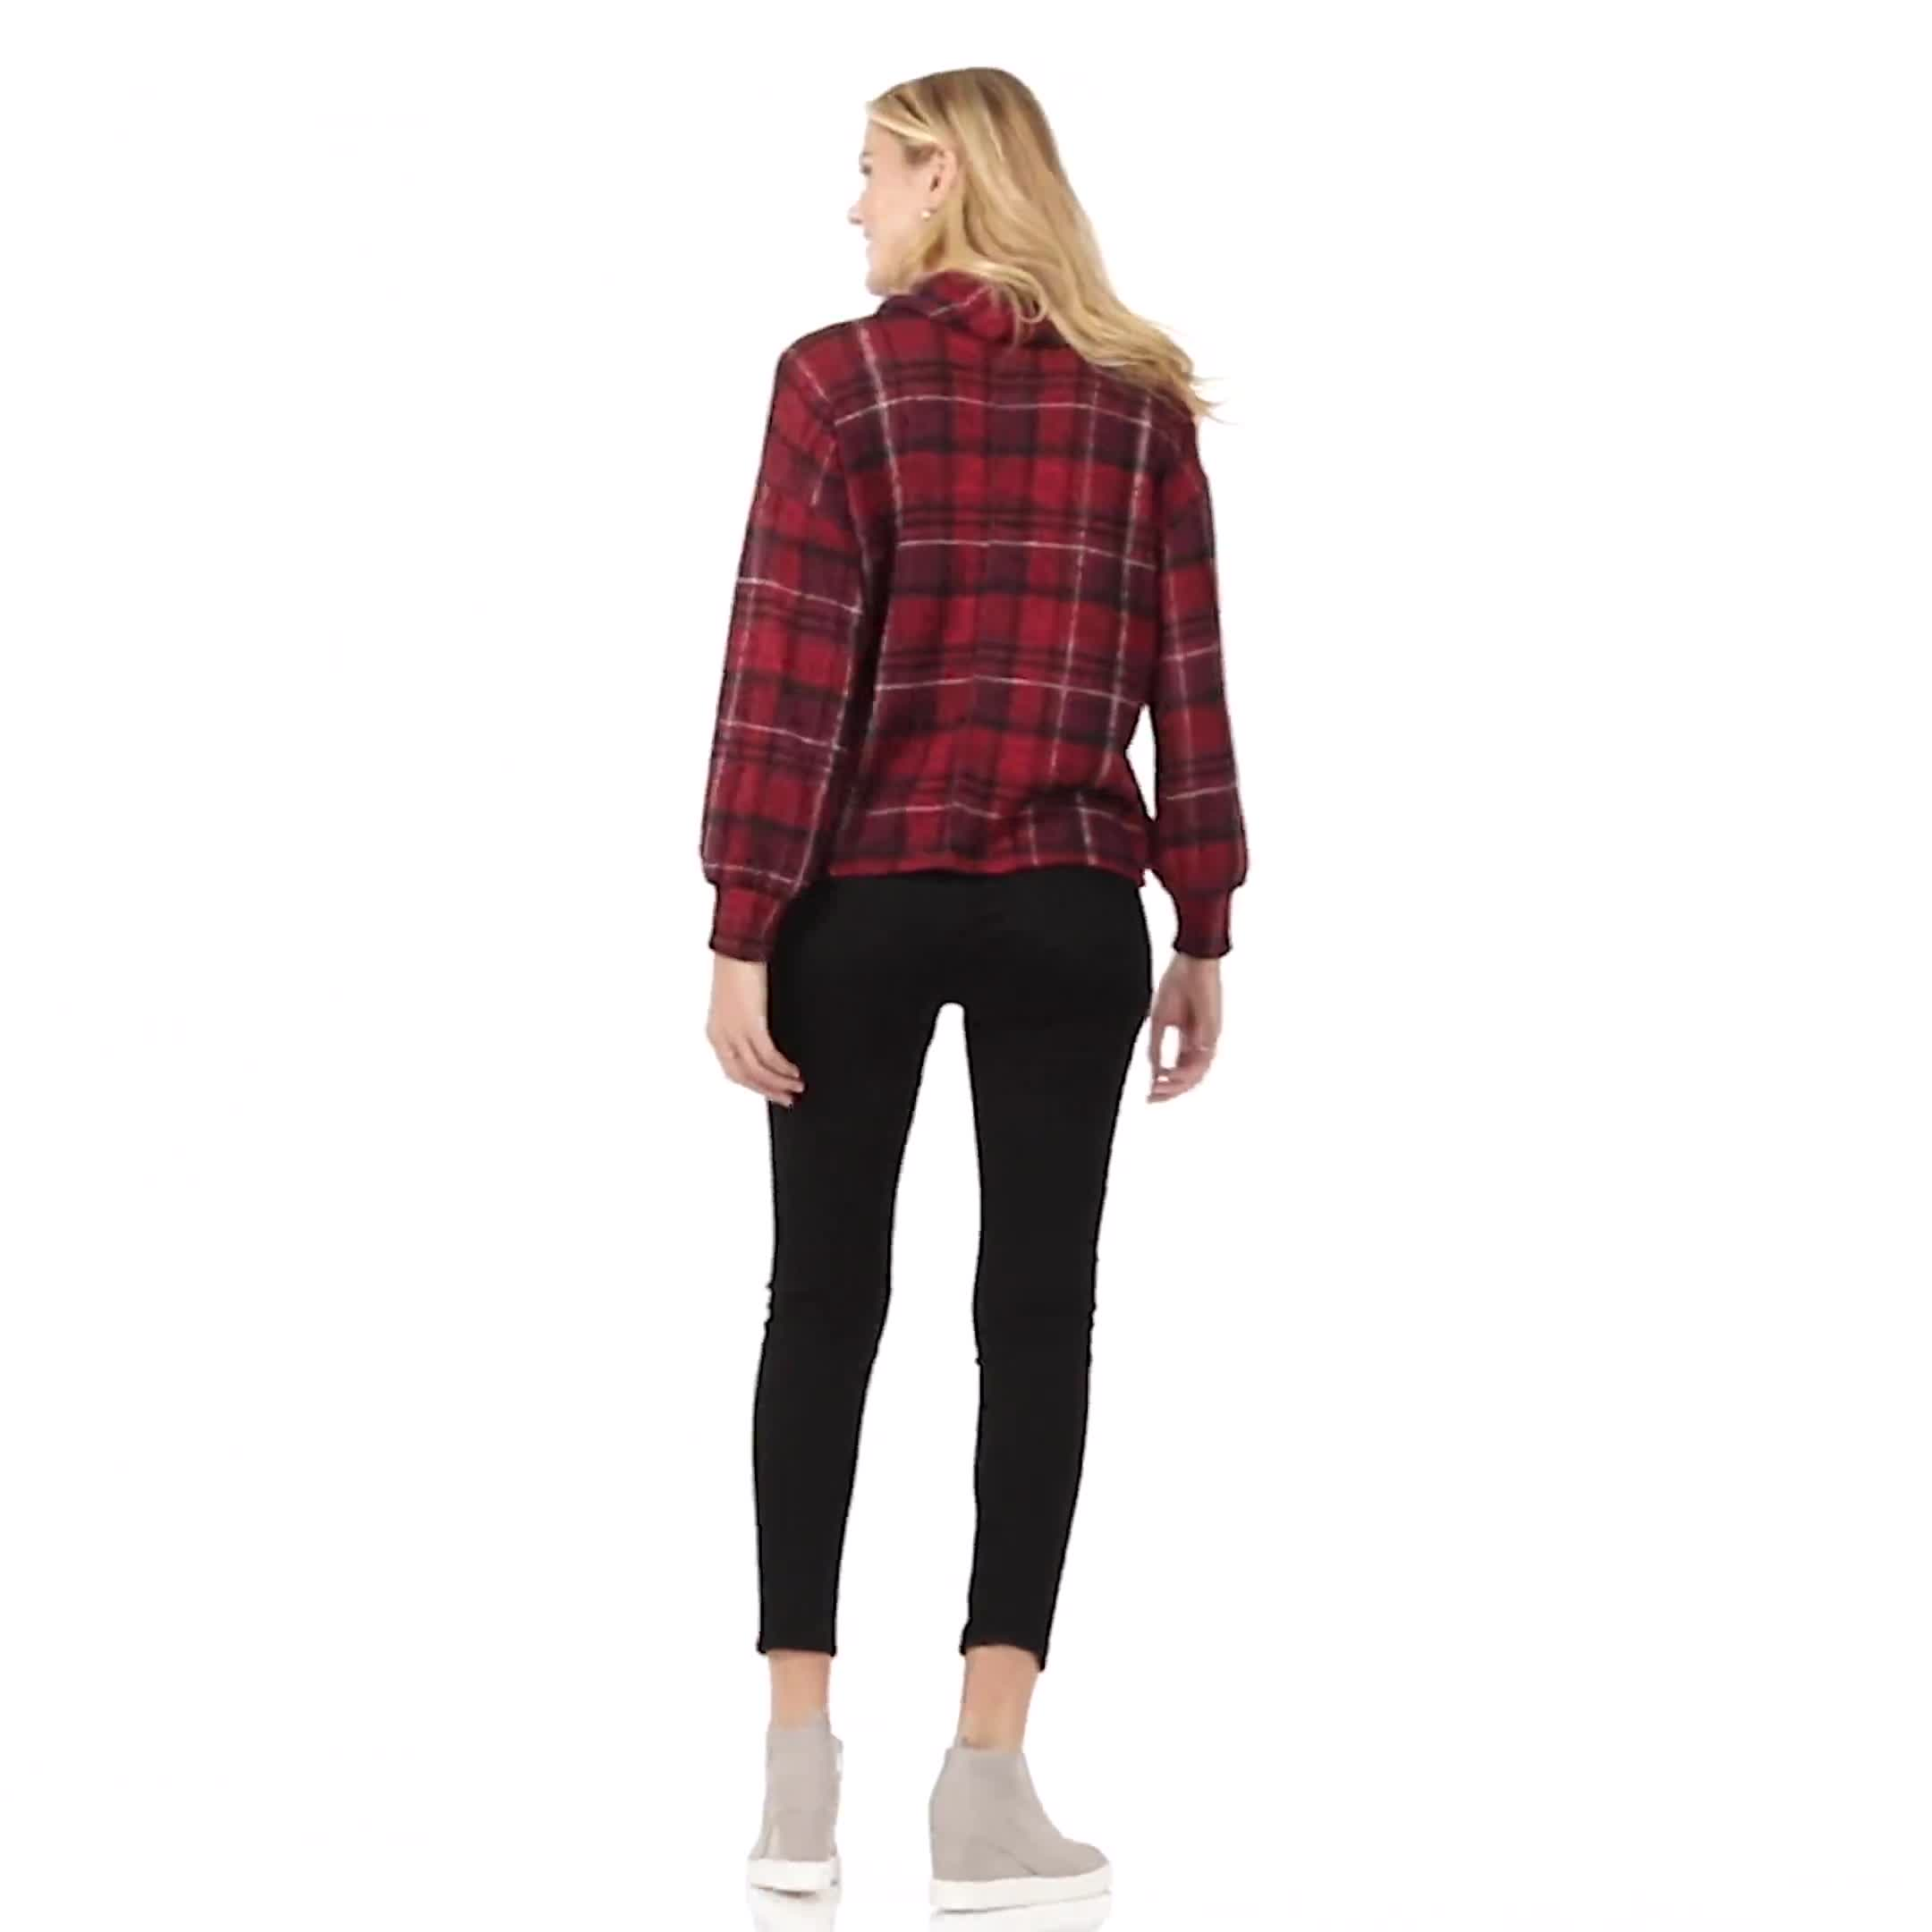 Red Plaid Cowl Neck Top - Misses - Video